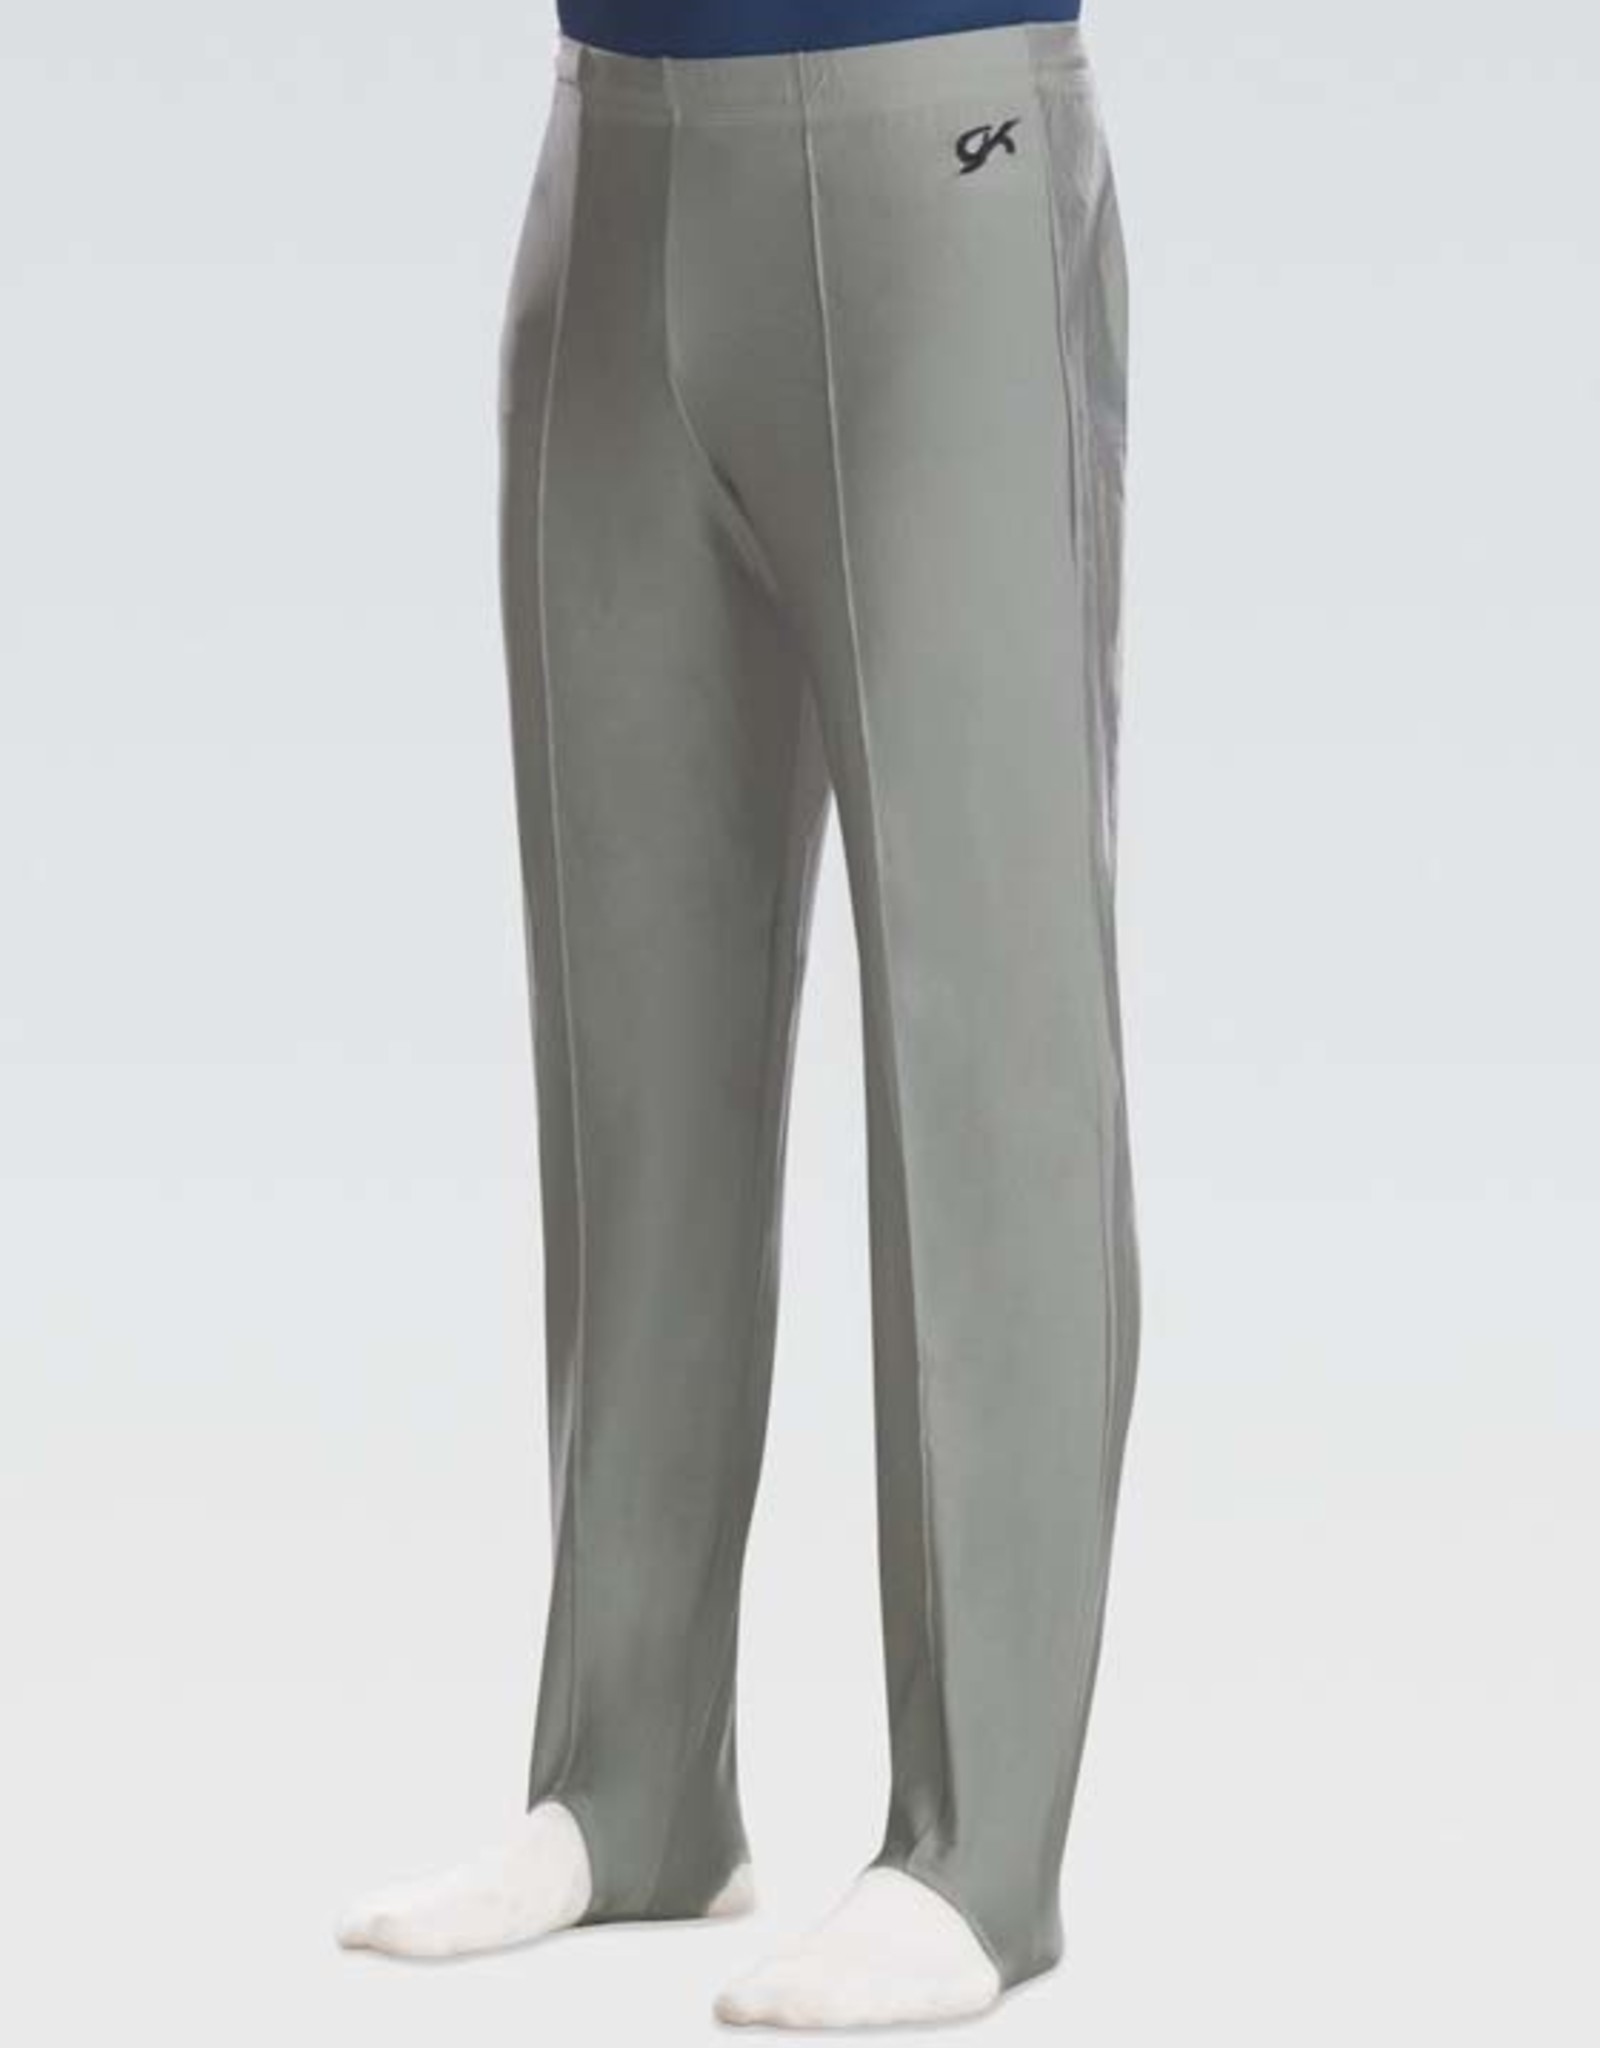 GK Elite 1846M - COMPETITION PANTS Steel